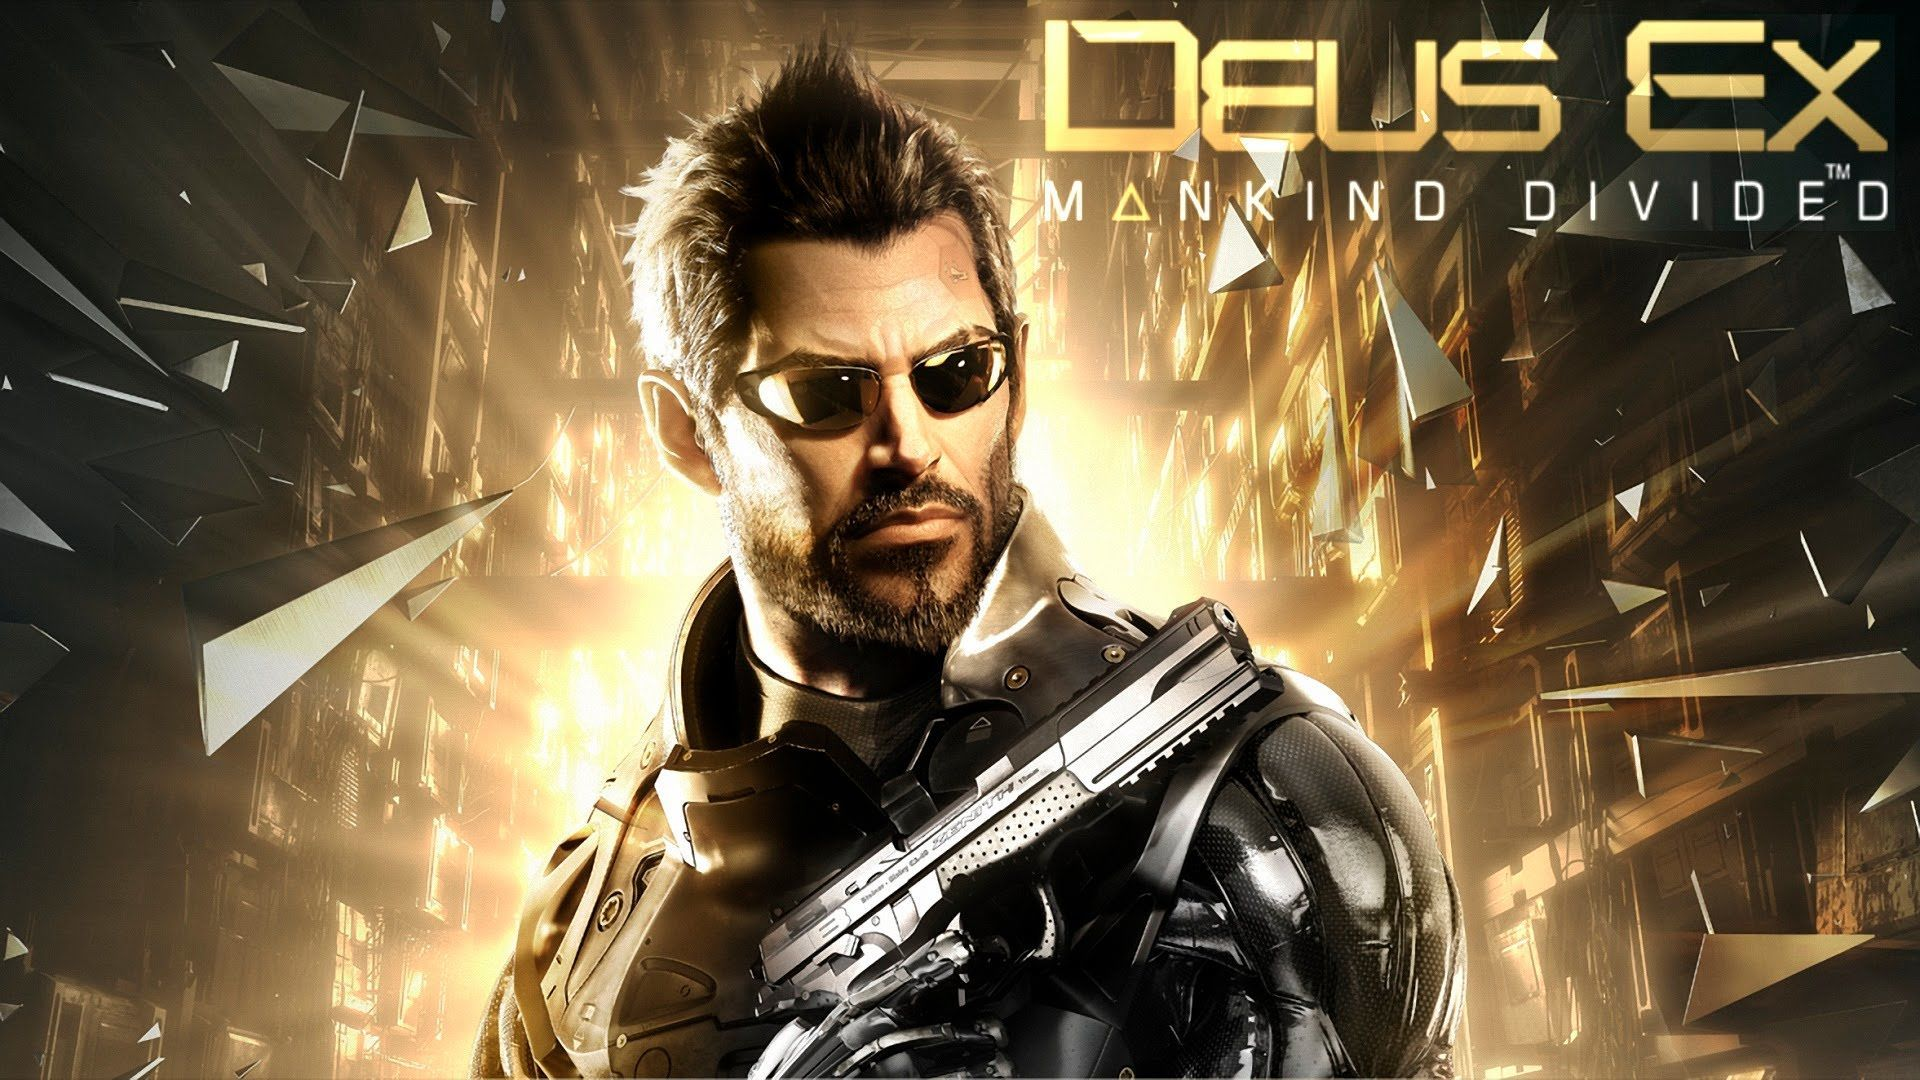 deus ex mankind divided 2015 hottest gamer gifts images